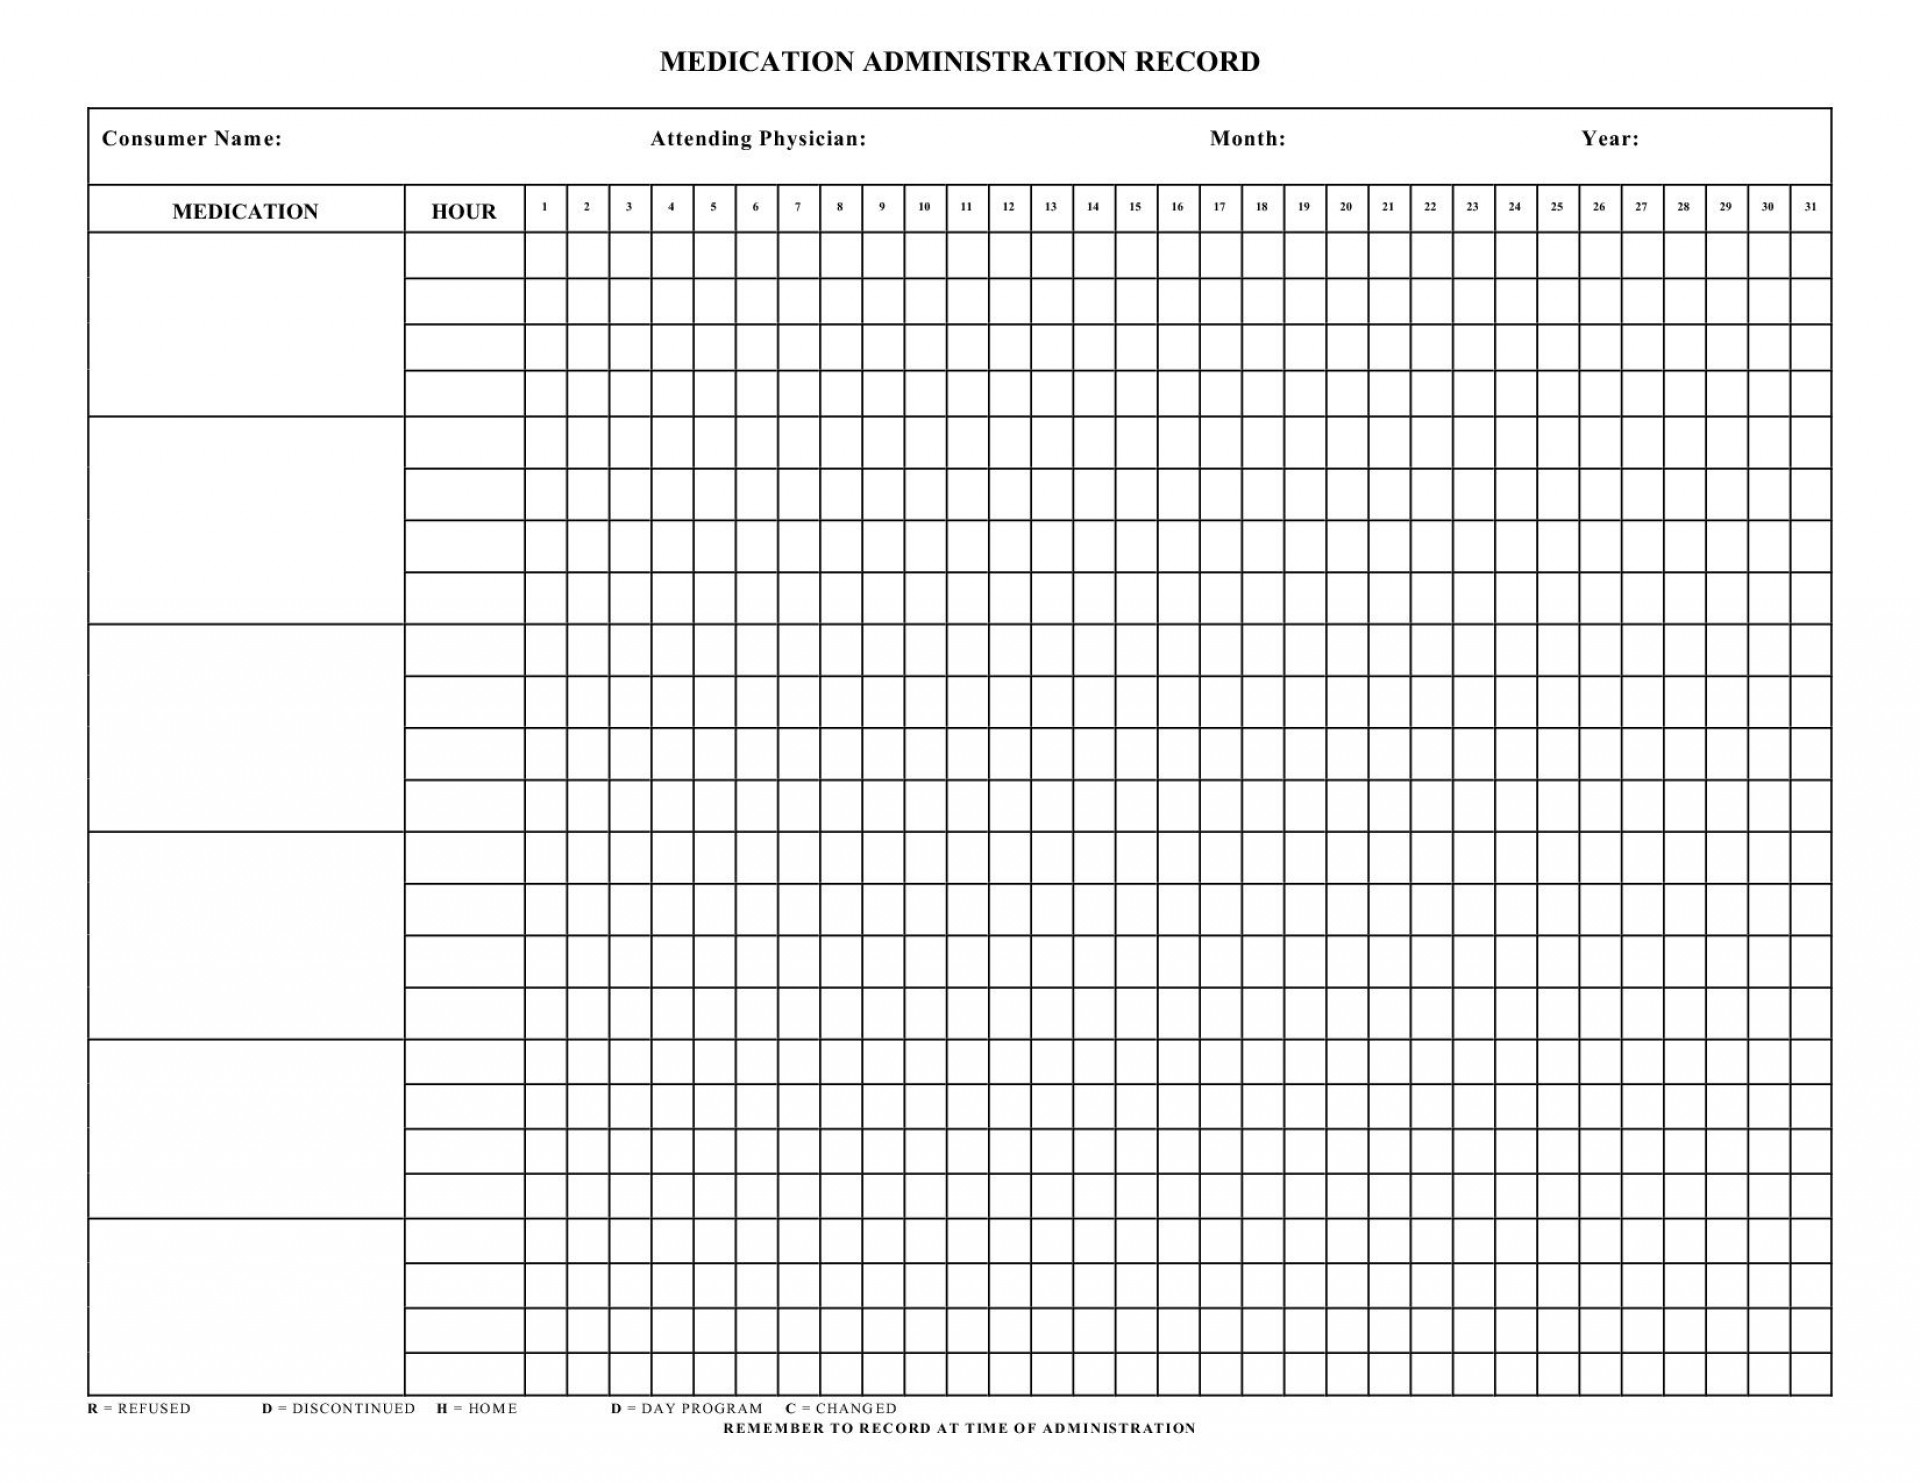 002 Sensational Medication Administration Record Template Inspiration  Templates Medicine Sheet1920